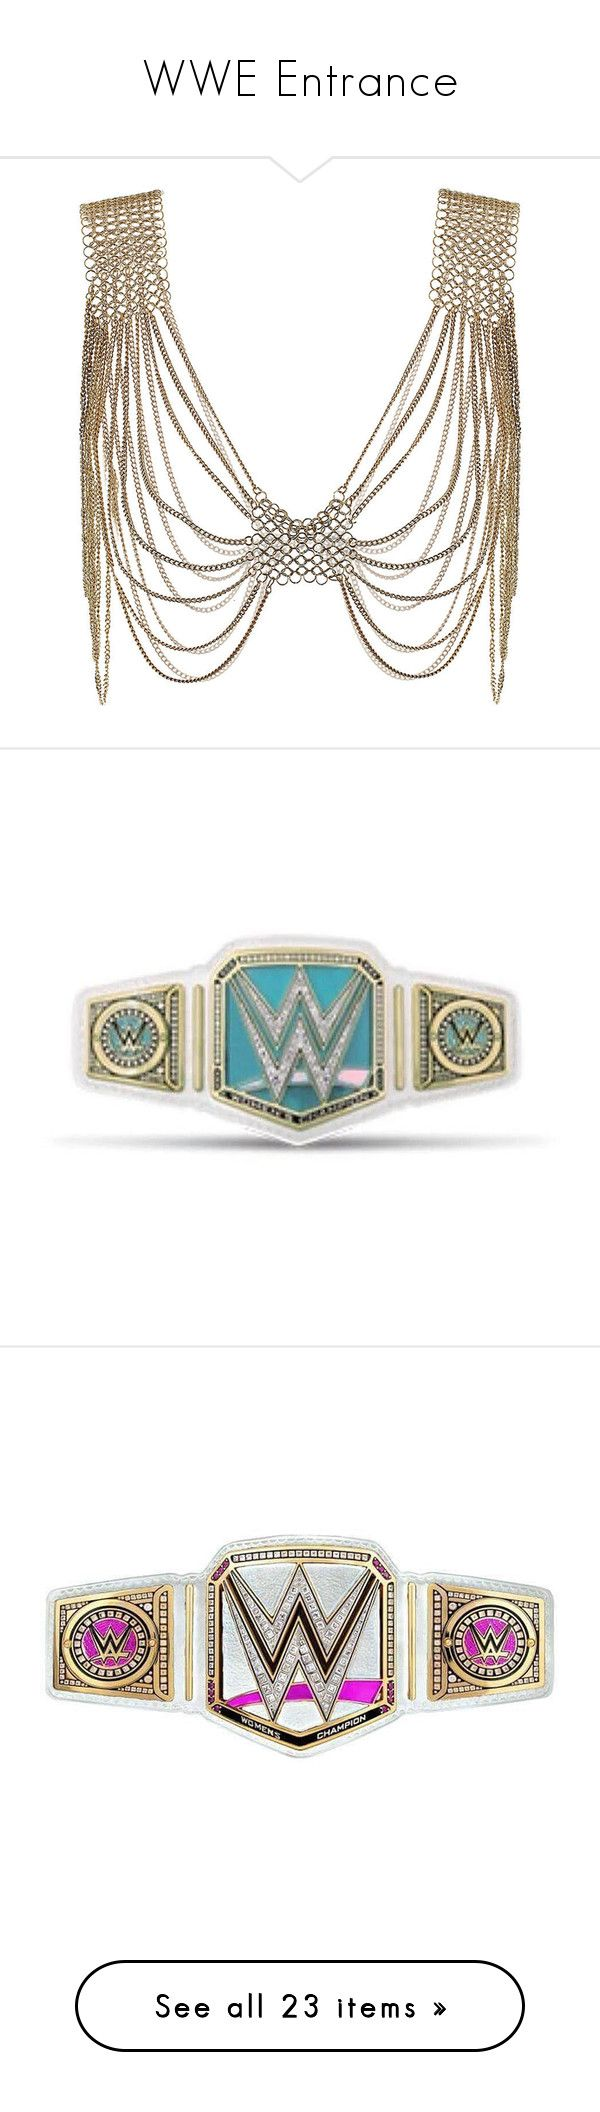 """WWE Entrance"" by rayvrayv98 ❤ liked on Polyvore featuring jewelry, necklaces, accessories, colares, gold, antique gold jewellery, antique gold jewelry, antique gold necklace, weapons and bracelets"